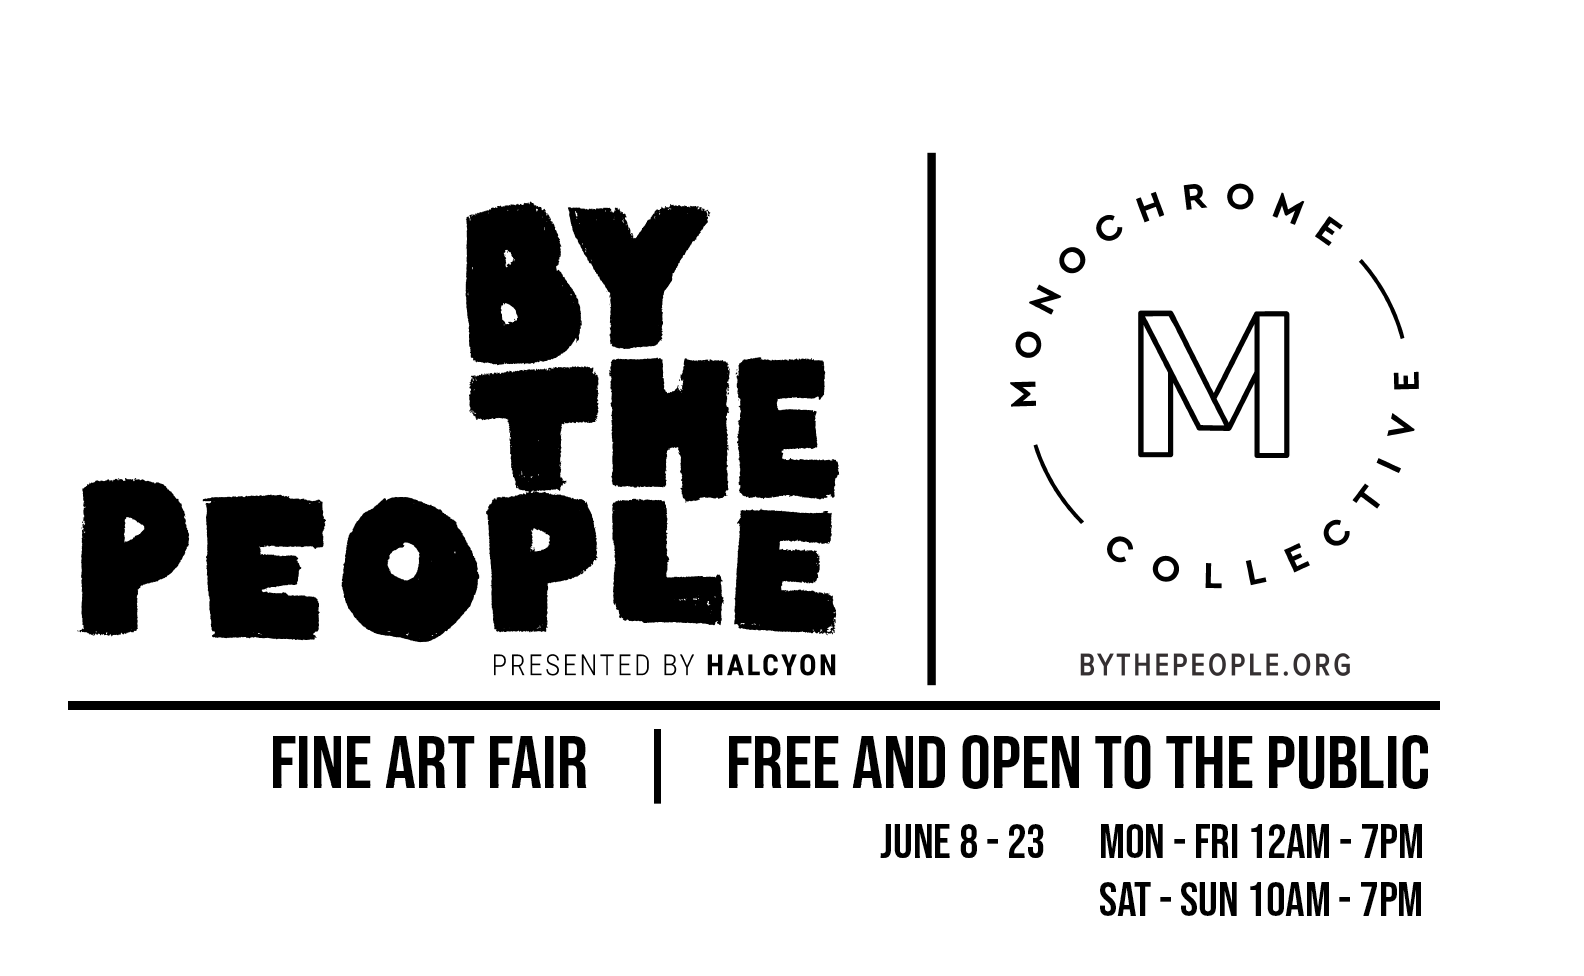 Exhibitions — MONOCHROME COLLECTIVE